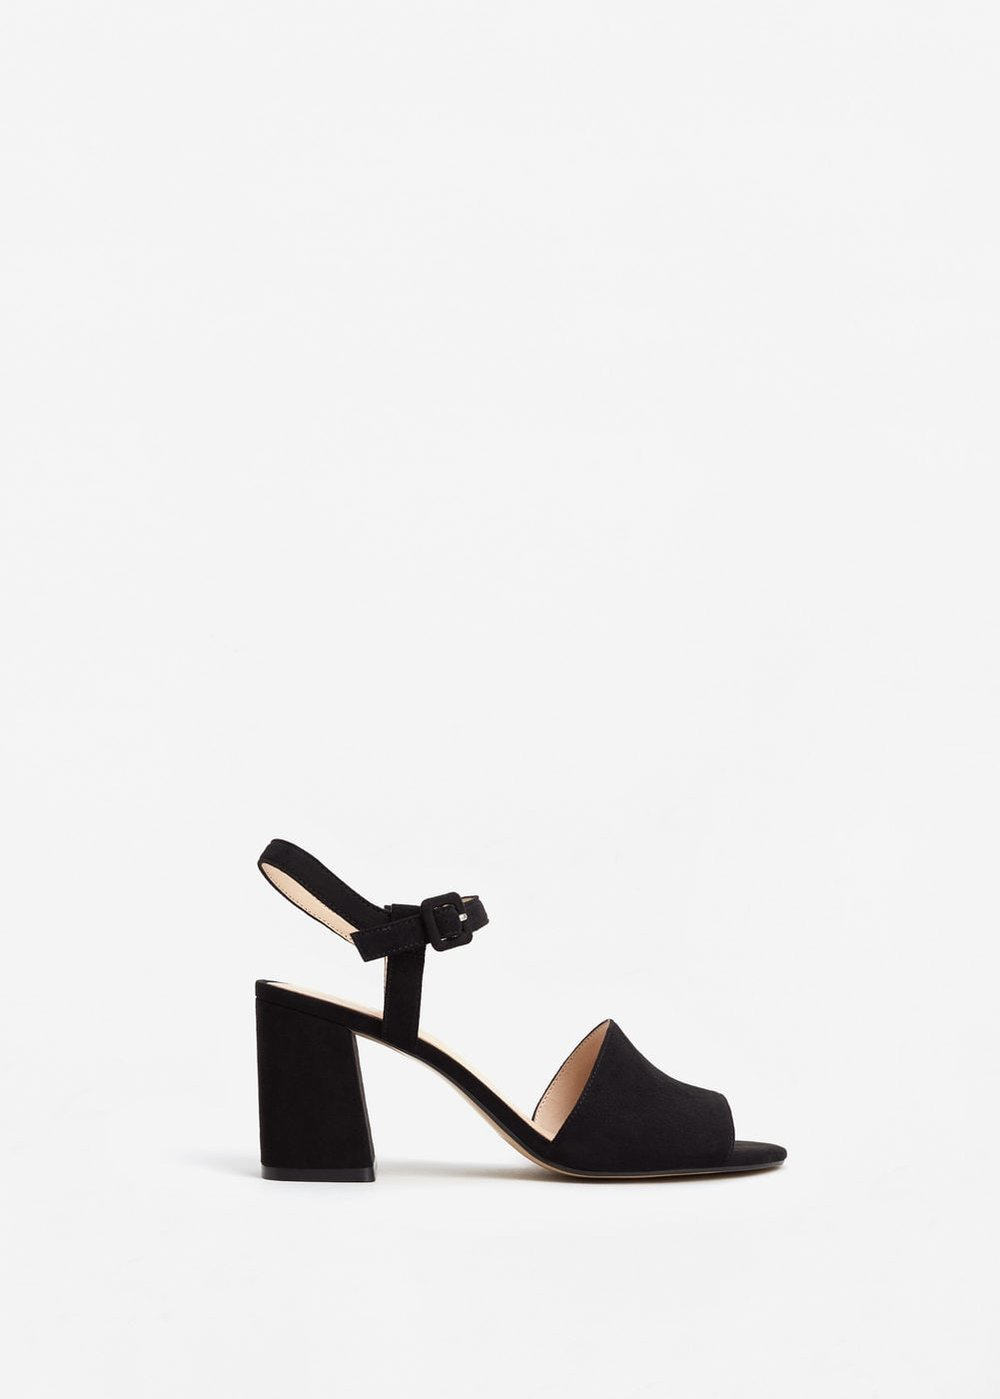 Mango Ankle- Cuff sandals $59.99